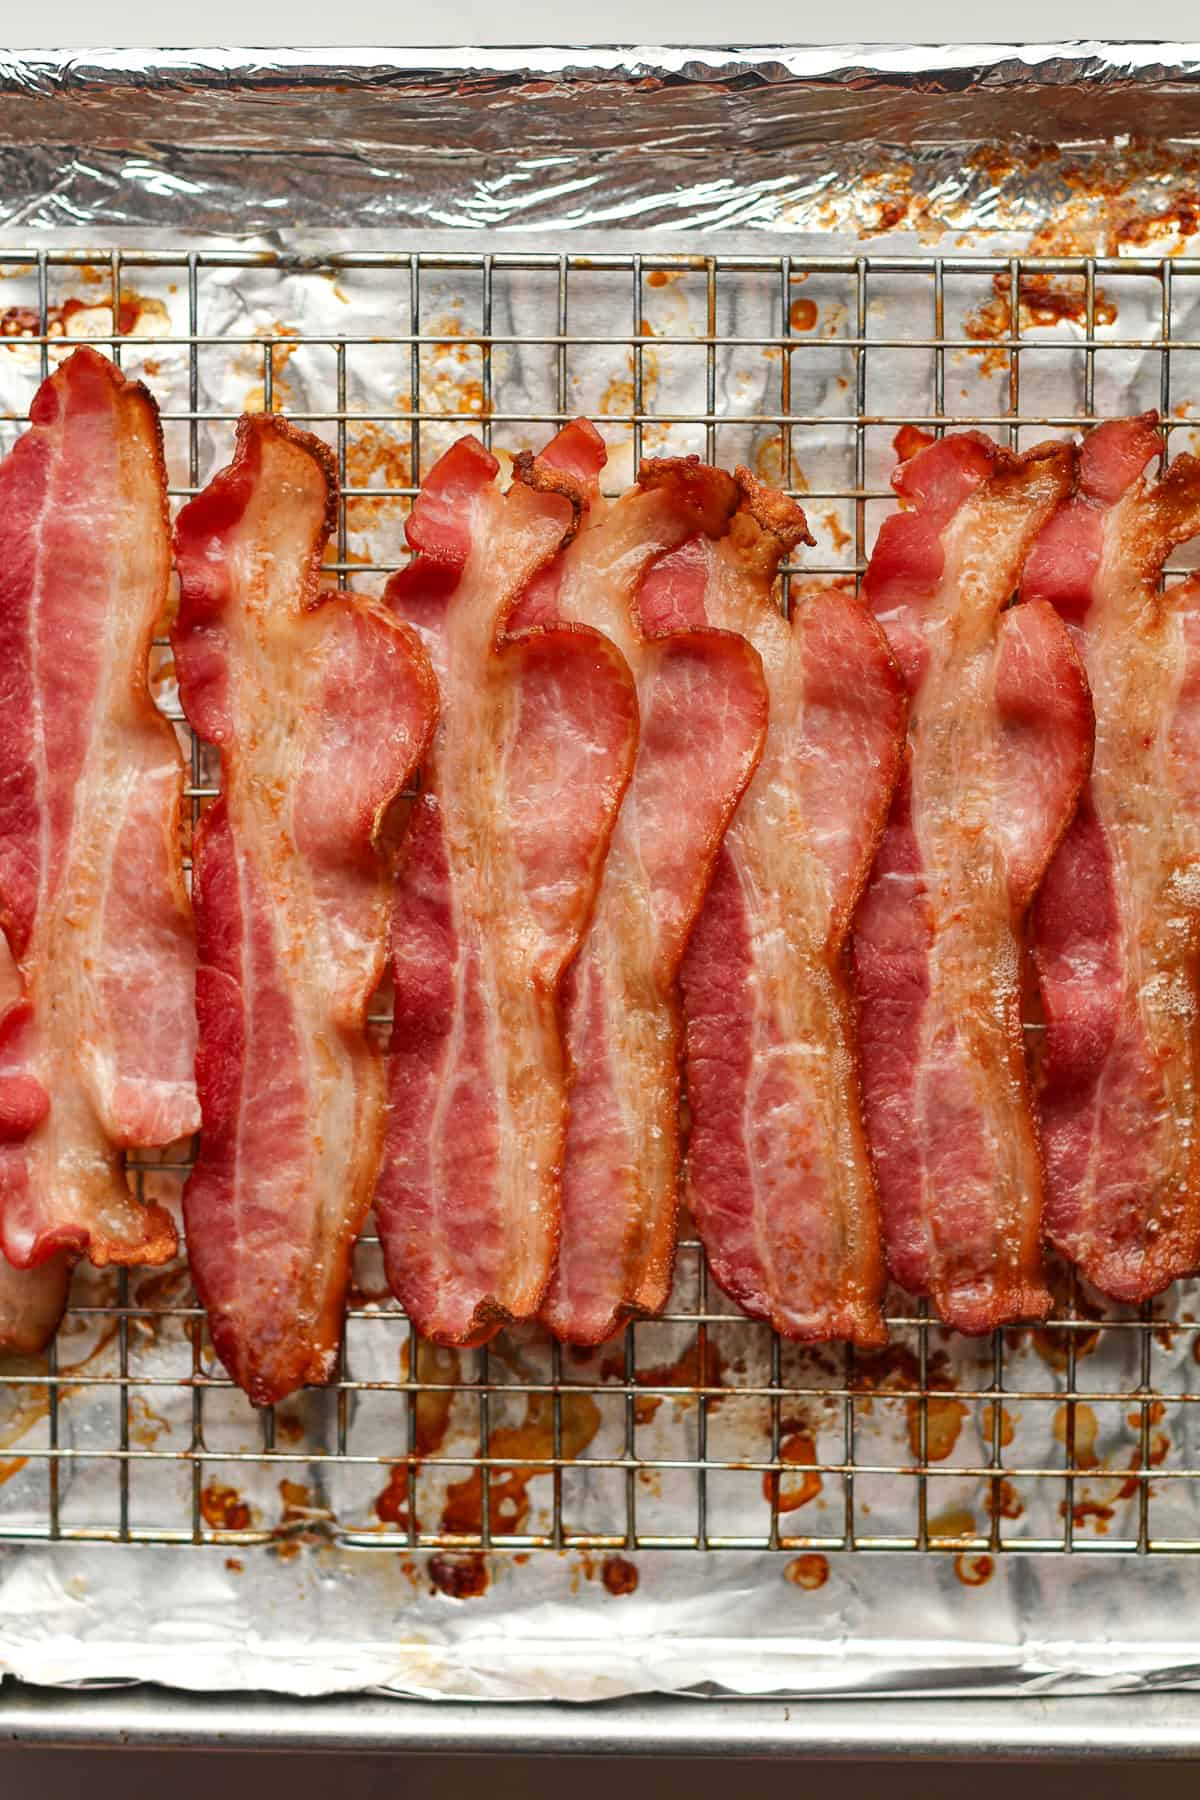 A pan of baked bacon.